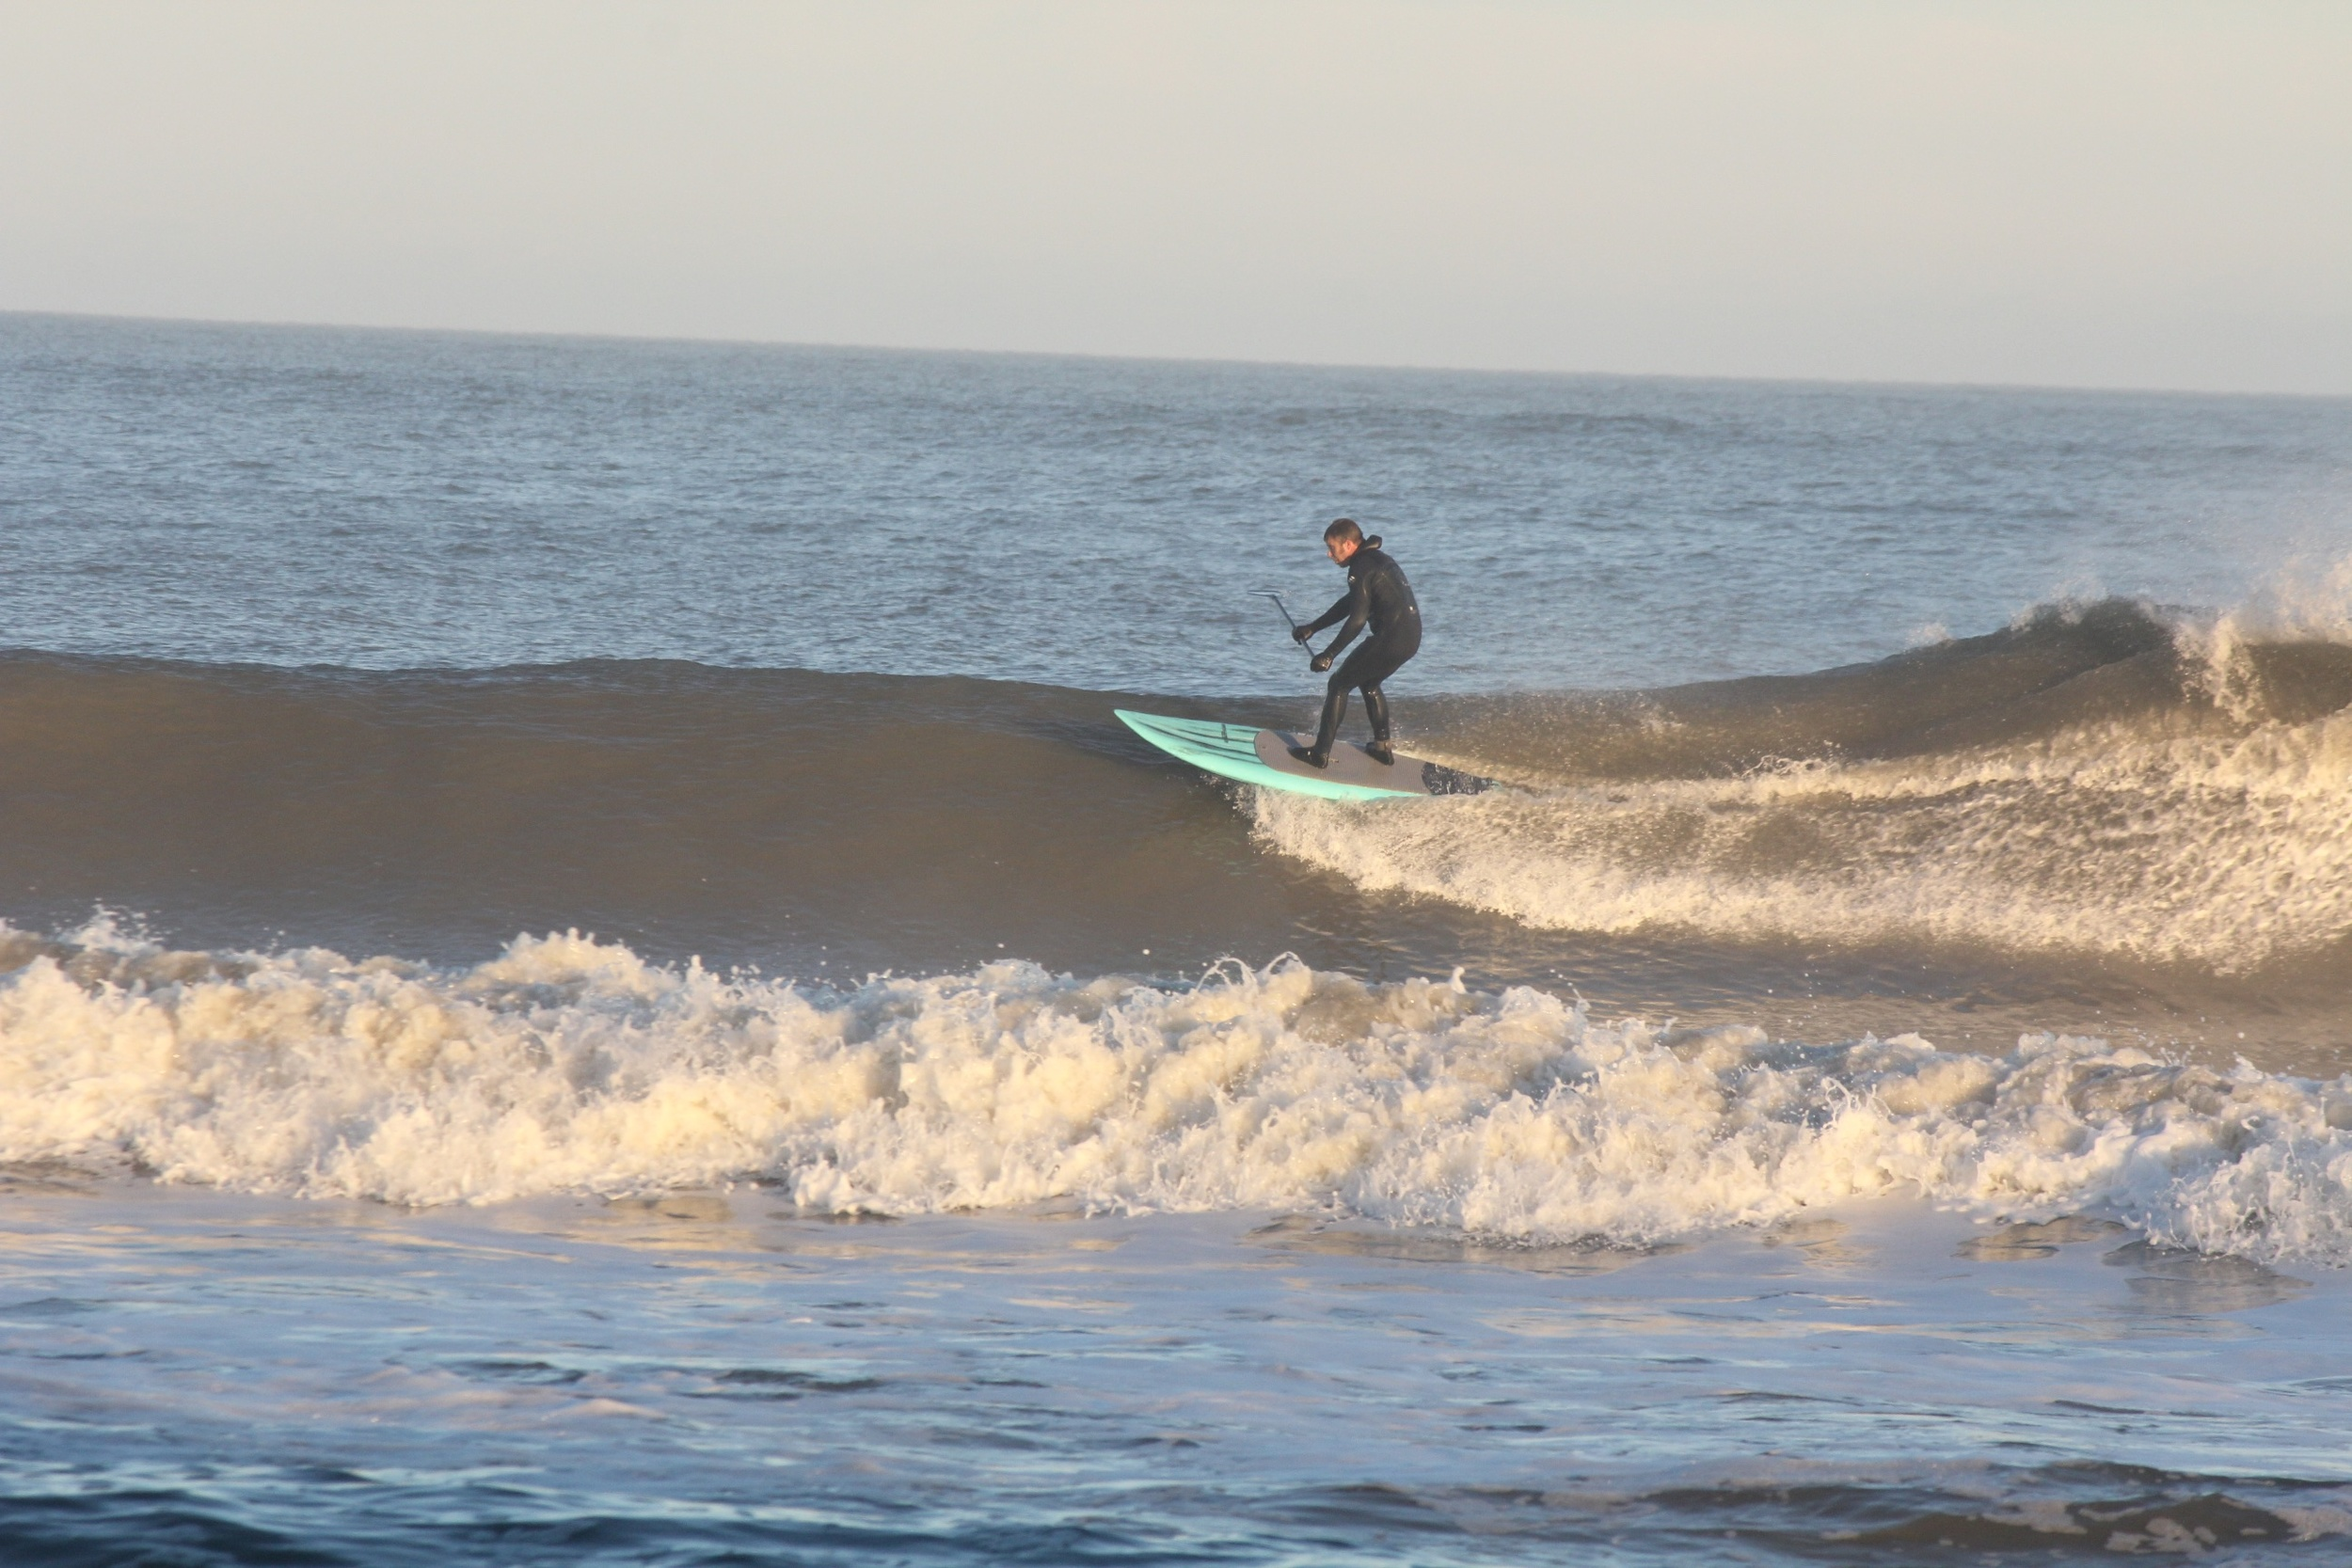 Same wave........taking it to the house!